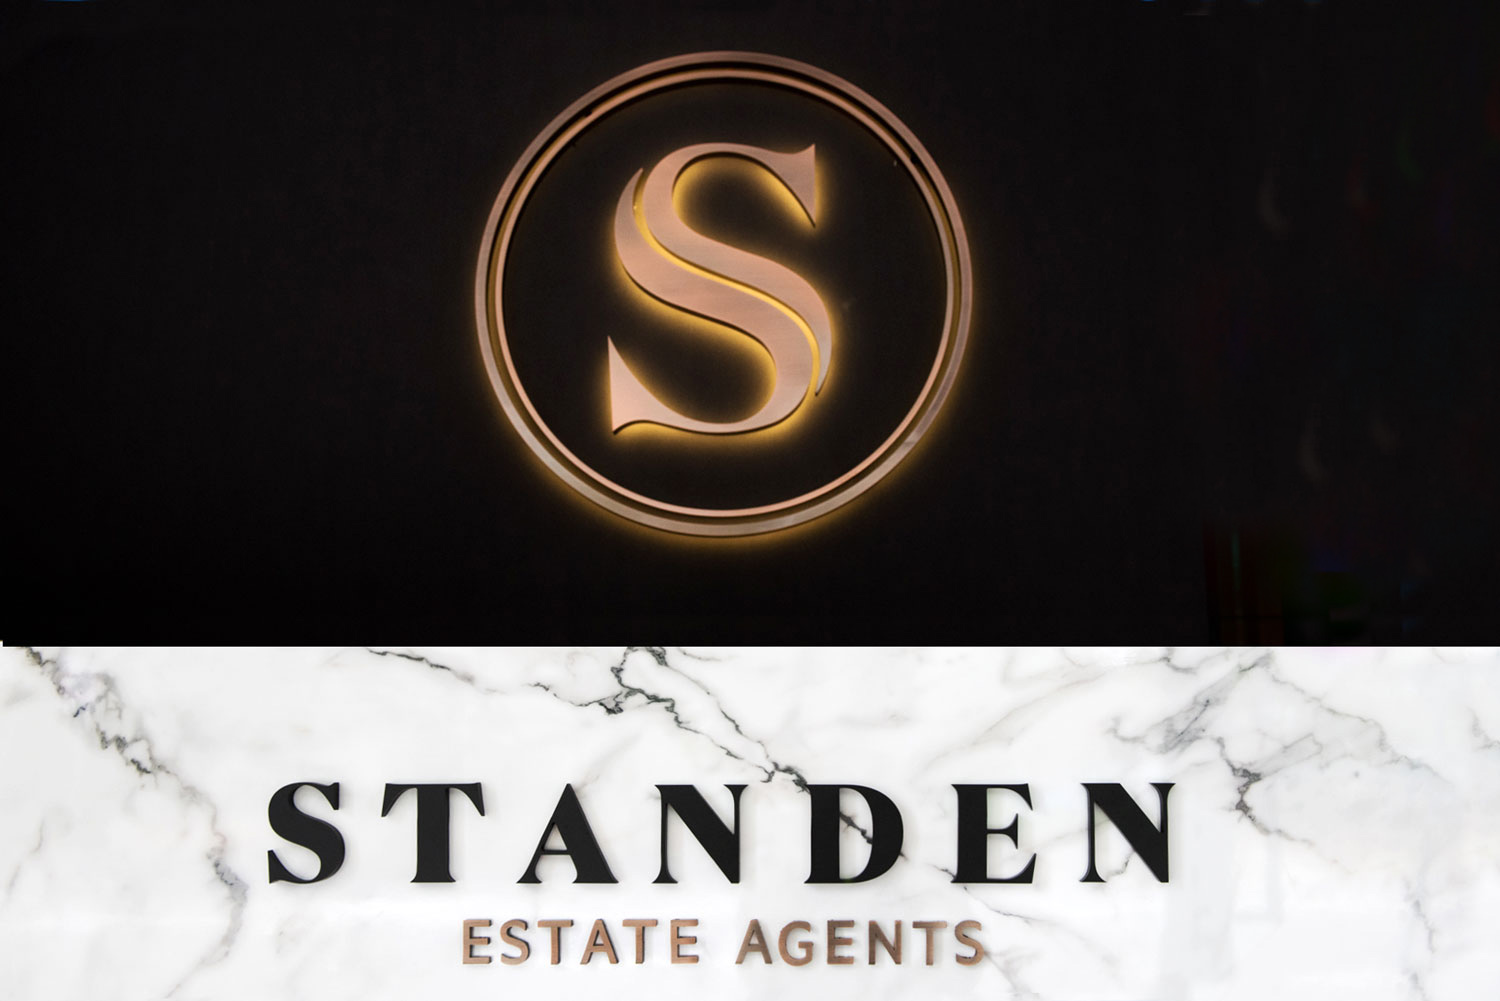 https://assets.boxdice.com.au/standengroup/attachments/3f7/78c/standen_estate_agents_jan_06_02b.jpg?f9127c4d4549fb2a42d5053c6e06ff83